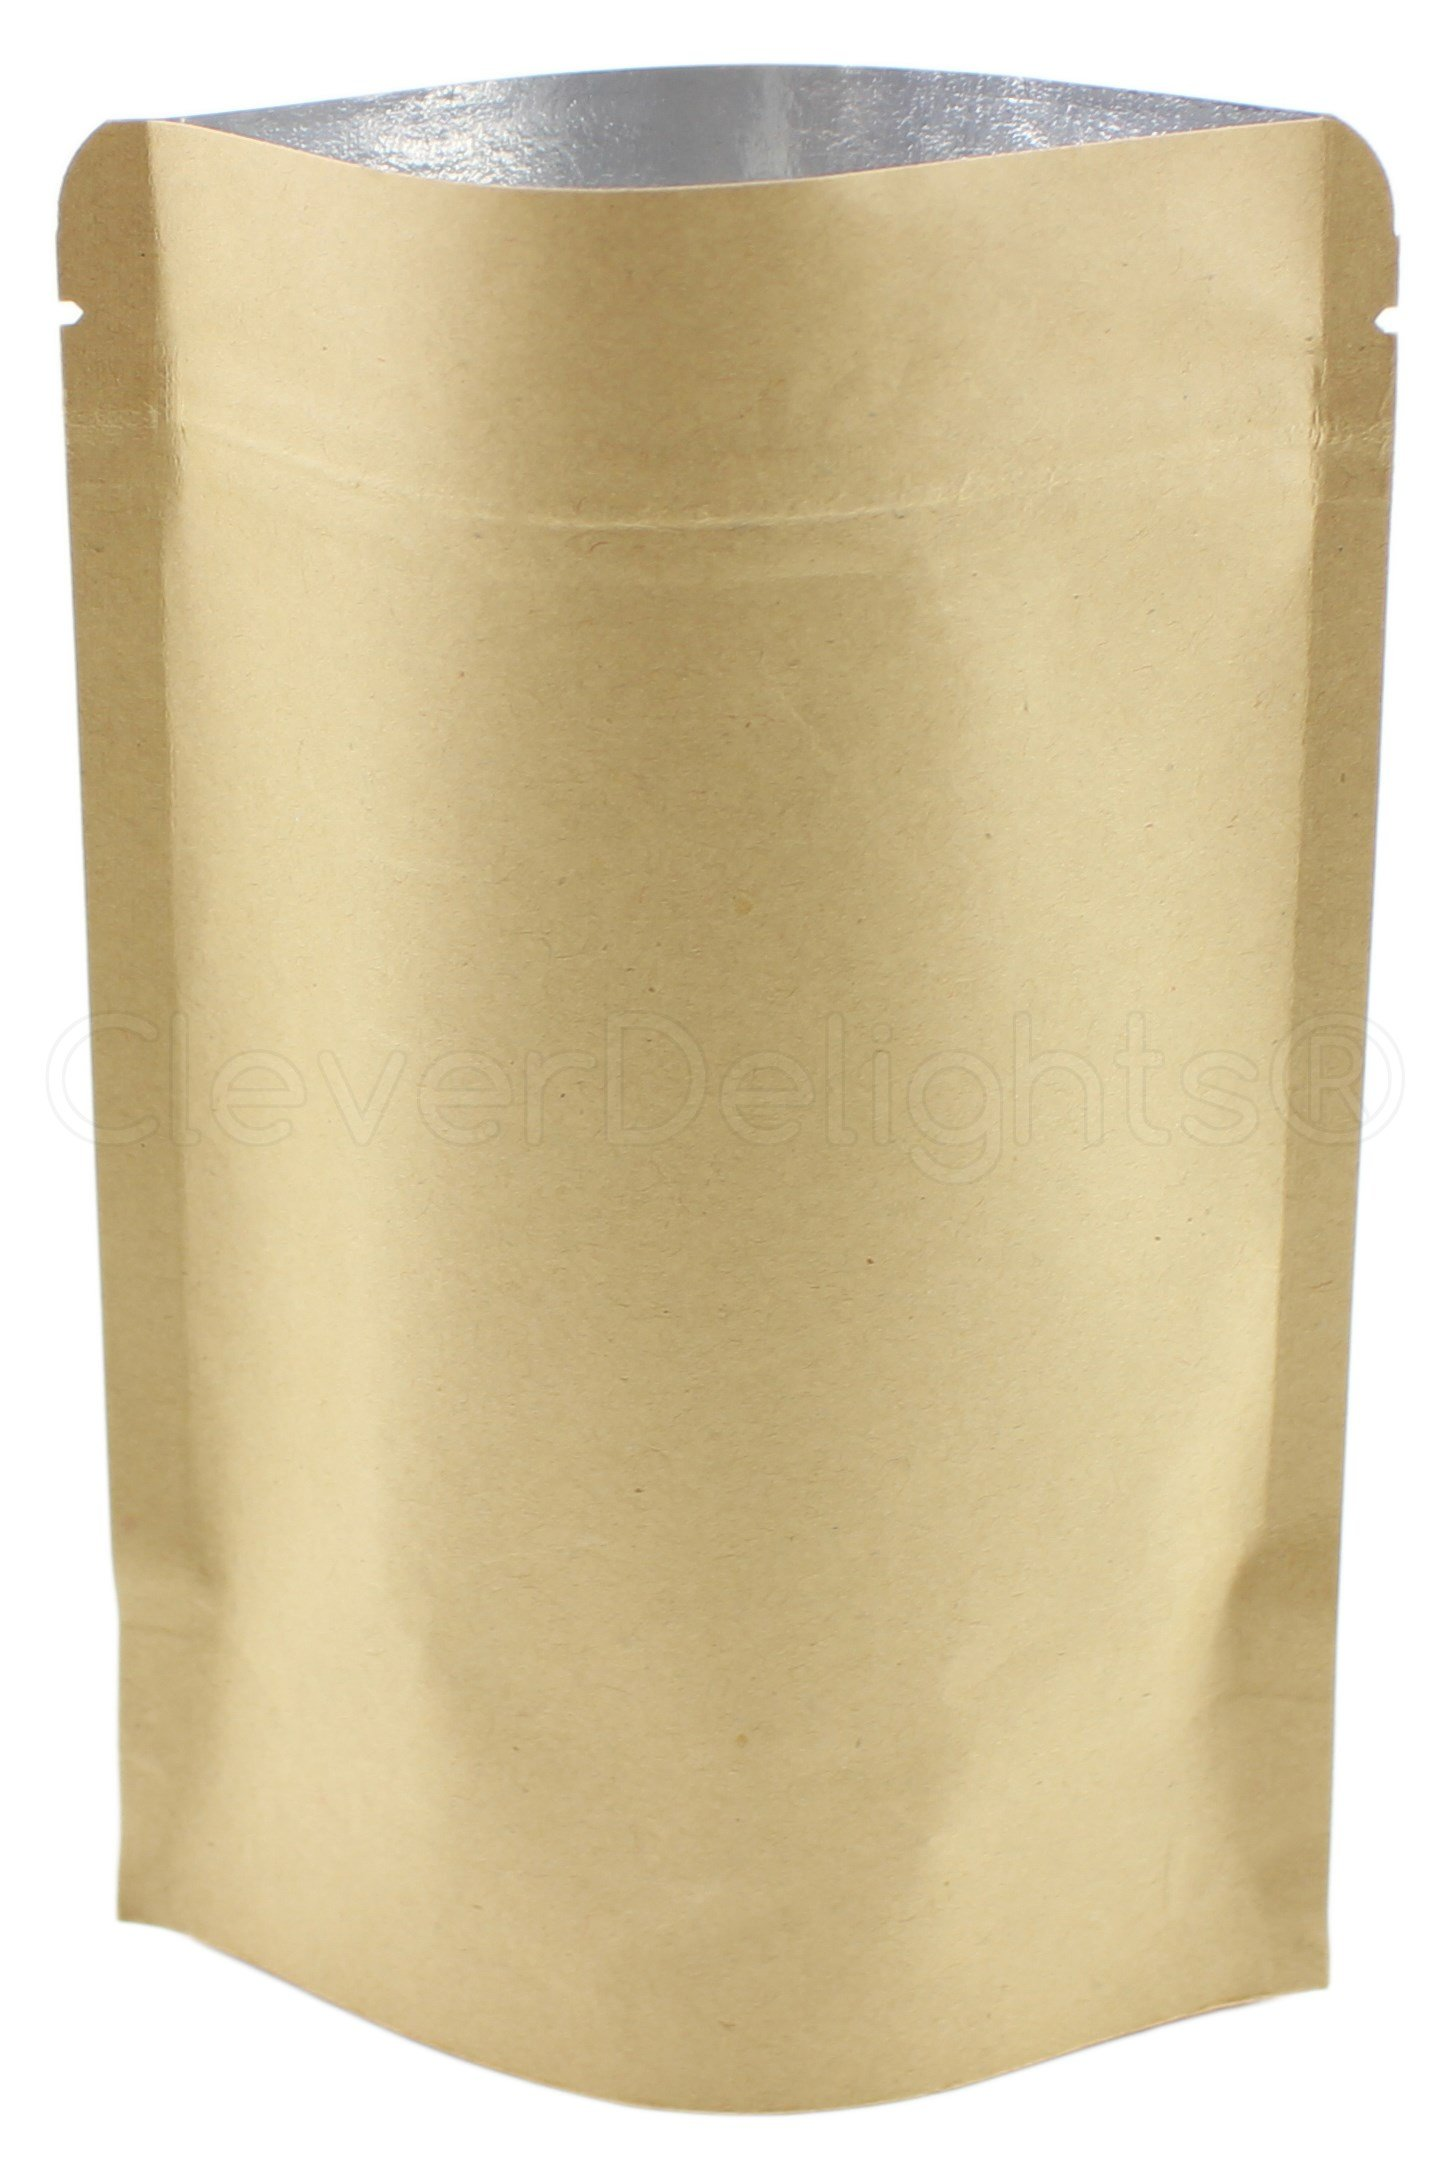 25 Pack - CleverDelights Kraft Stand-Up Pouches - 8oz - 6'' x 9'' x 3'' - Foil Lined with Zipper Lock